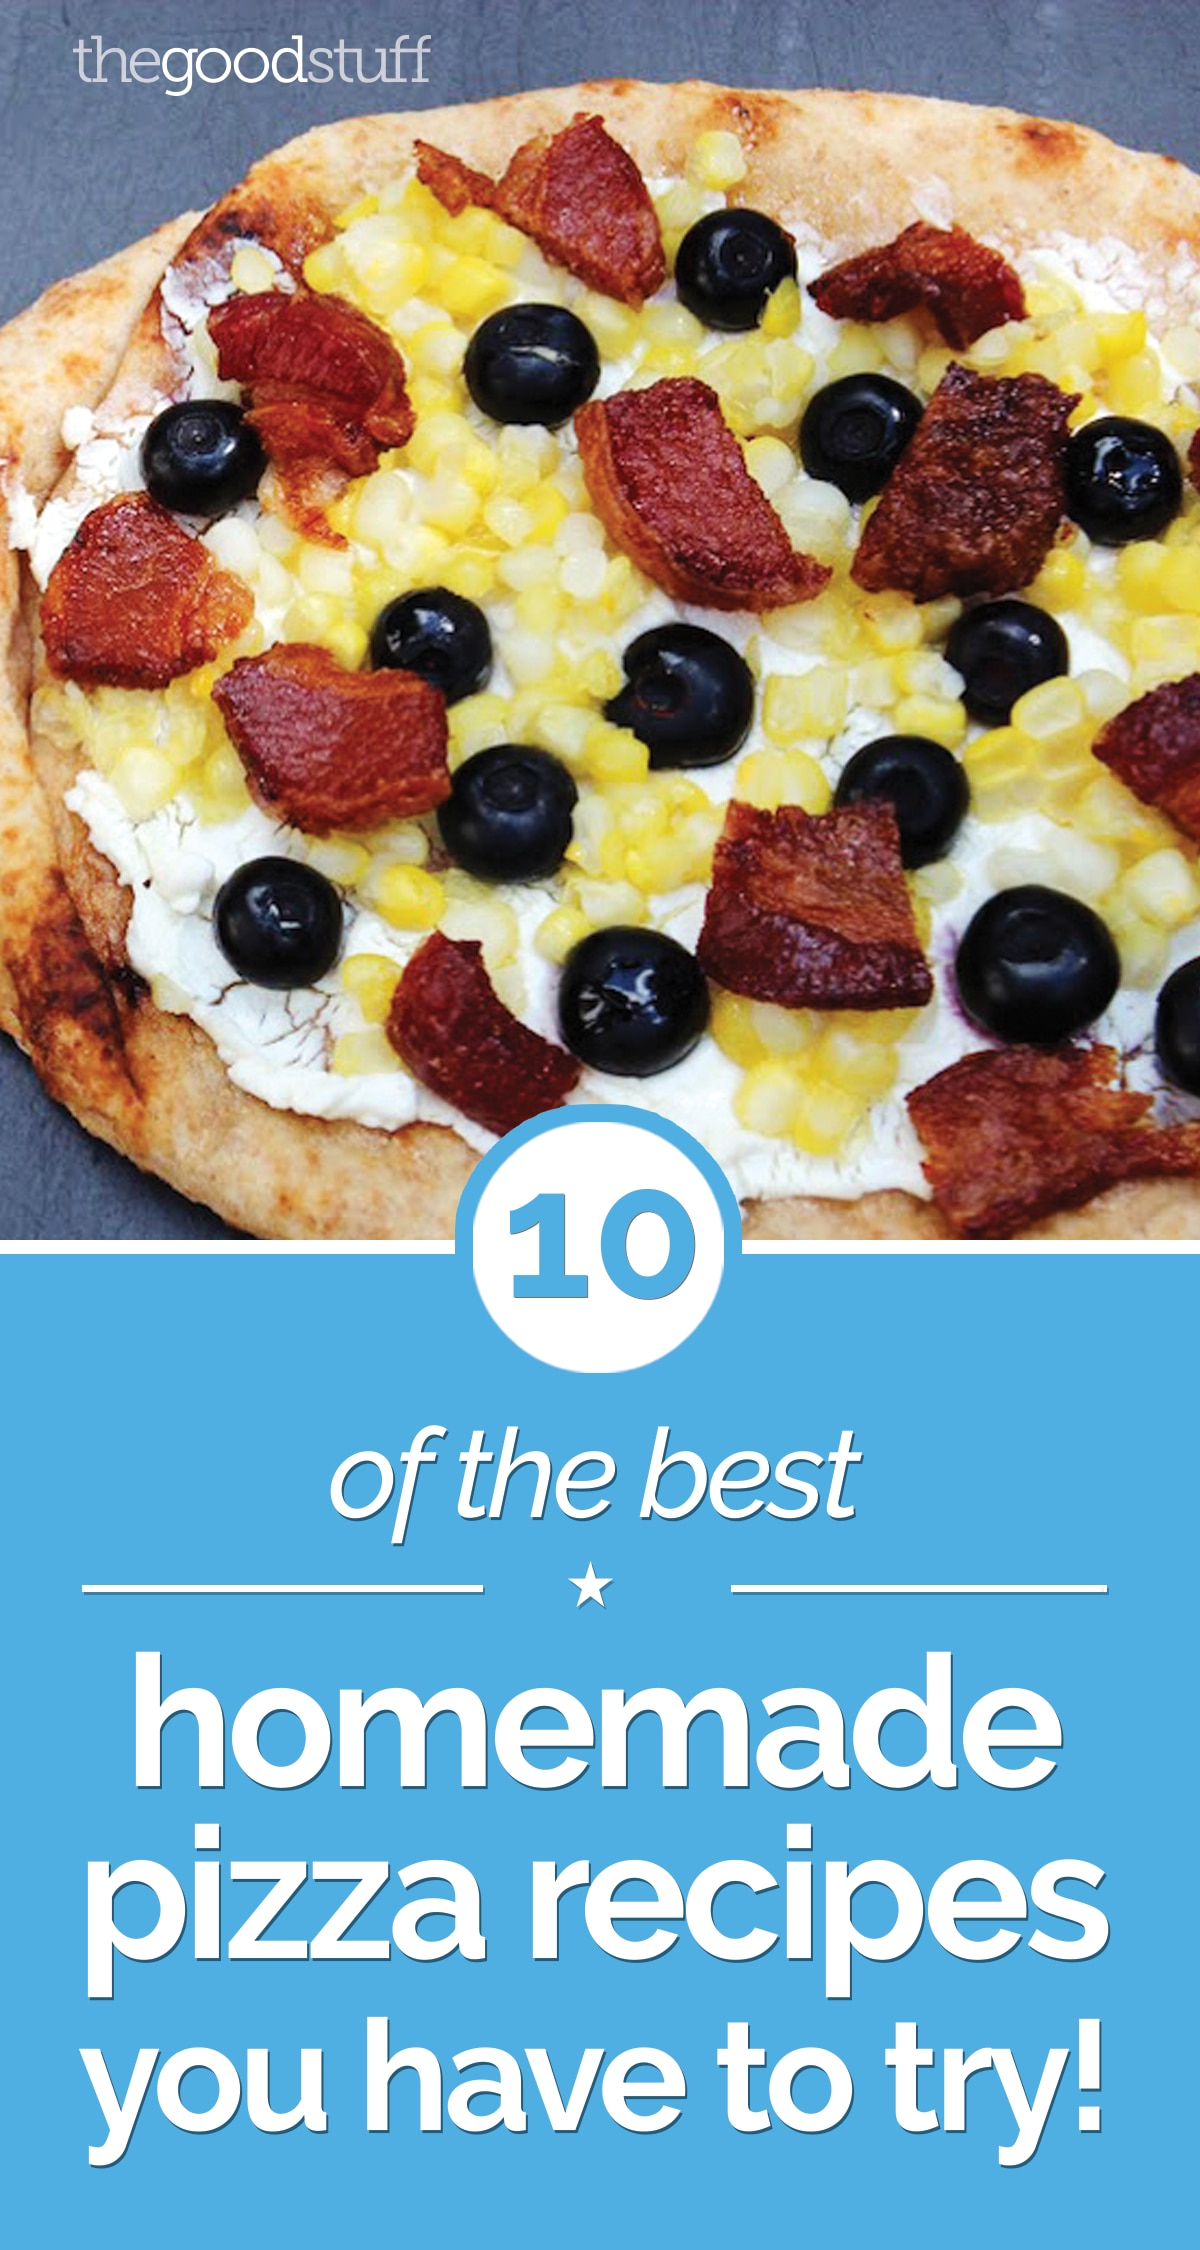 11 of the Best Homemade Pizza Recipes - thegoodstuff